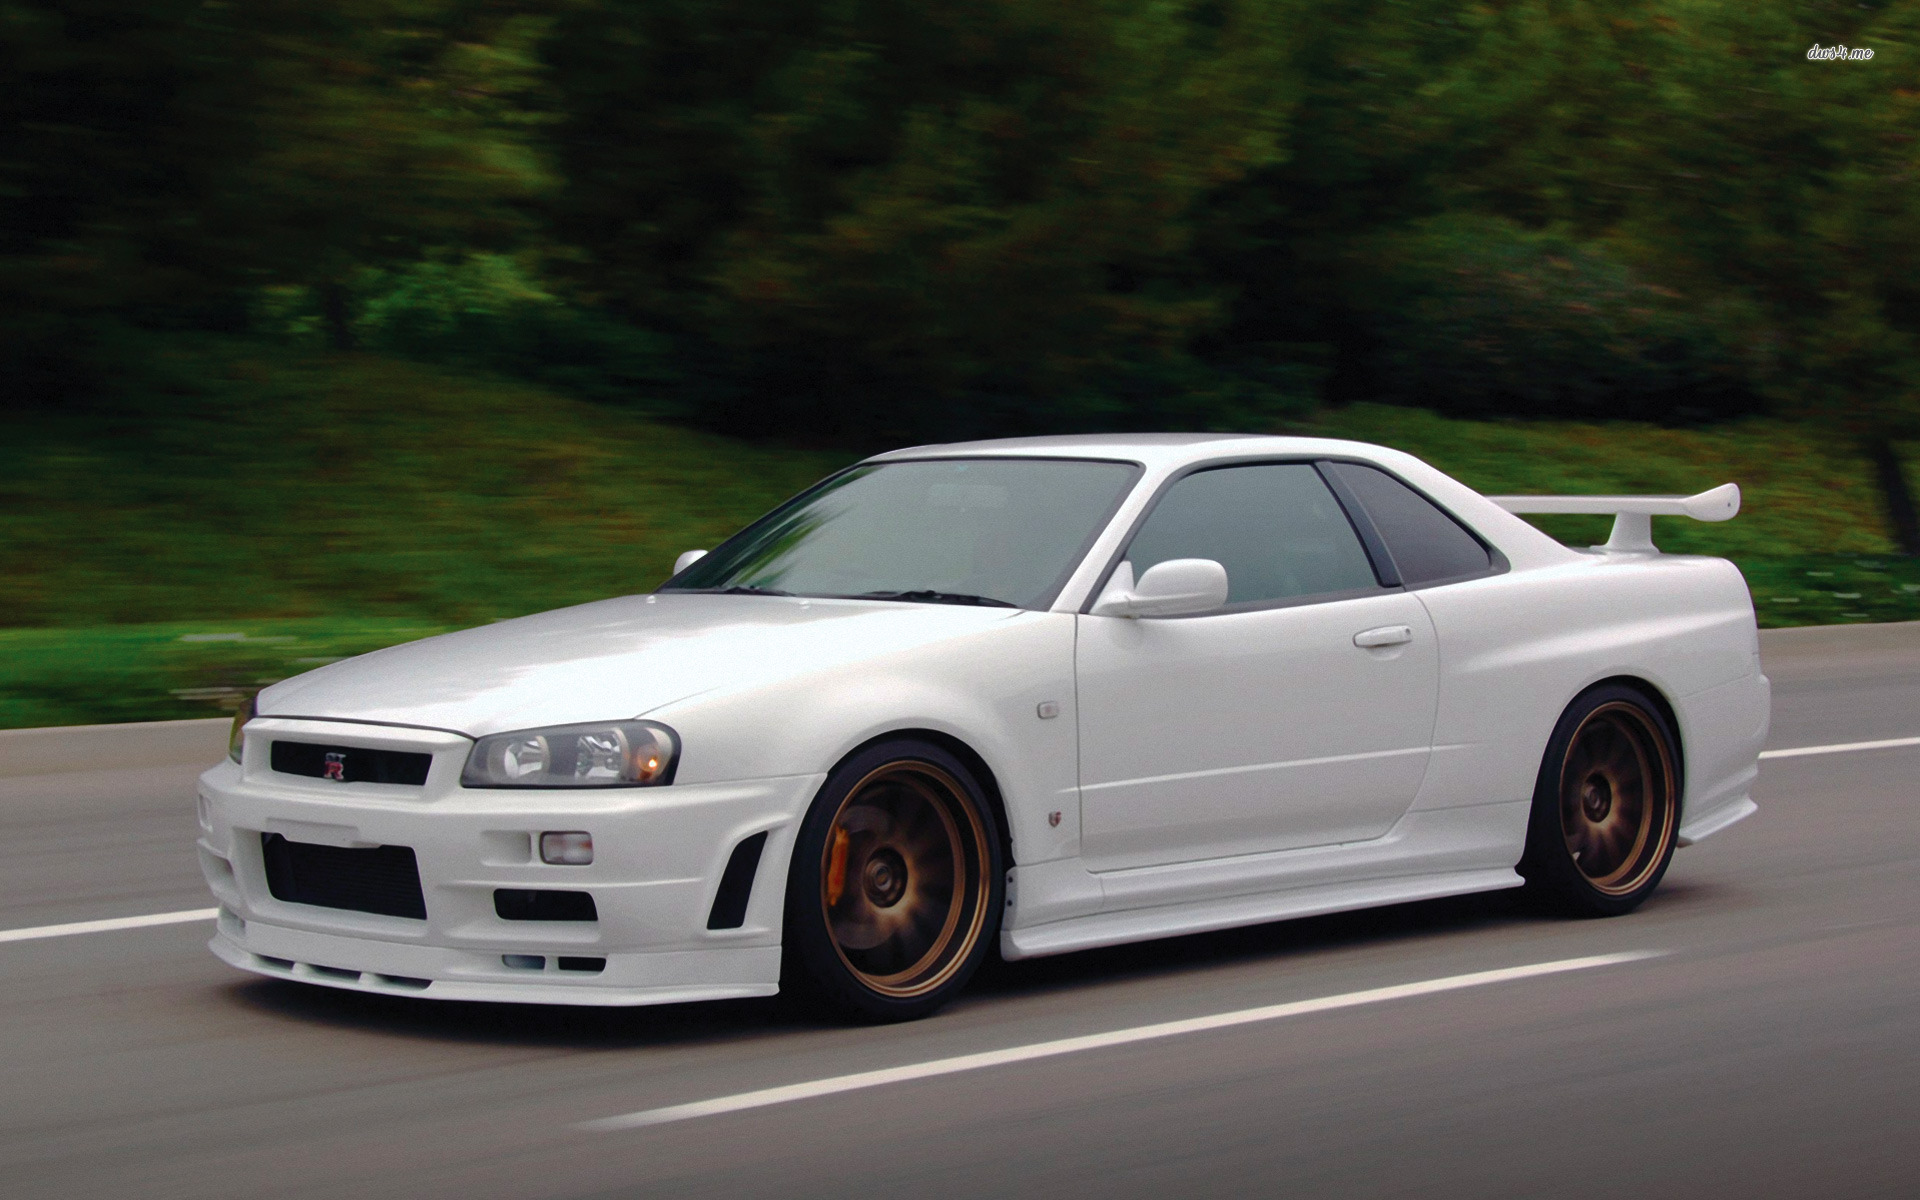 ... Nissan Skyline GT-R R34 wallpaper 1920x1200 ...